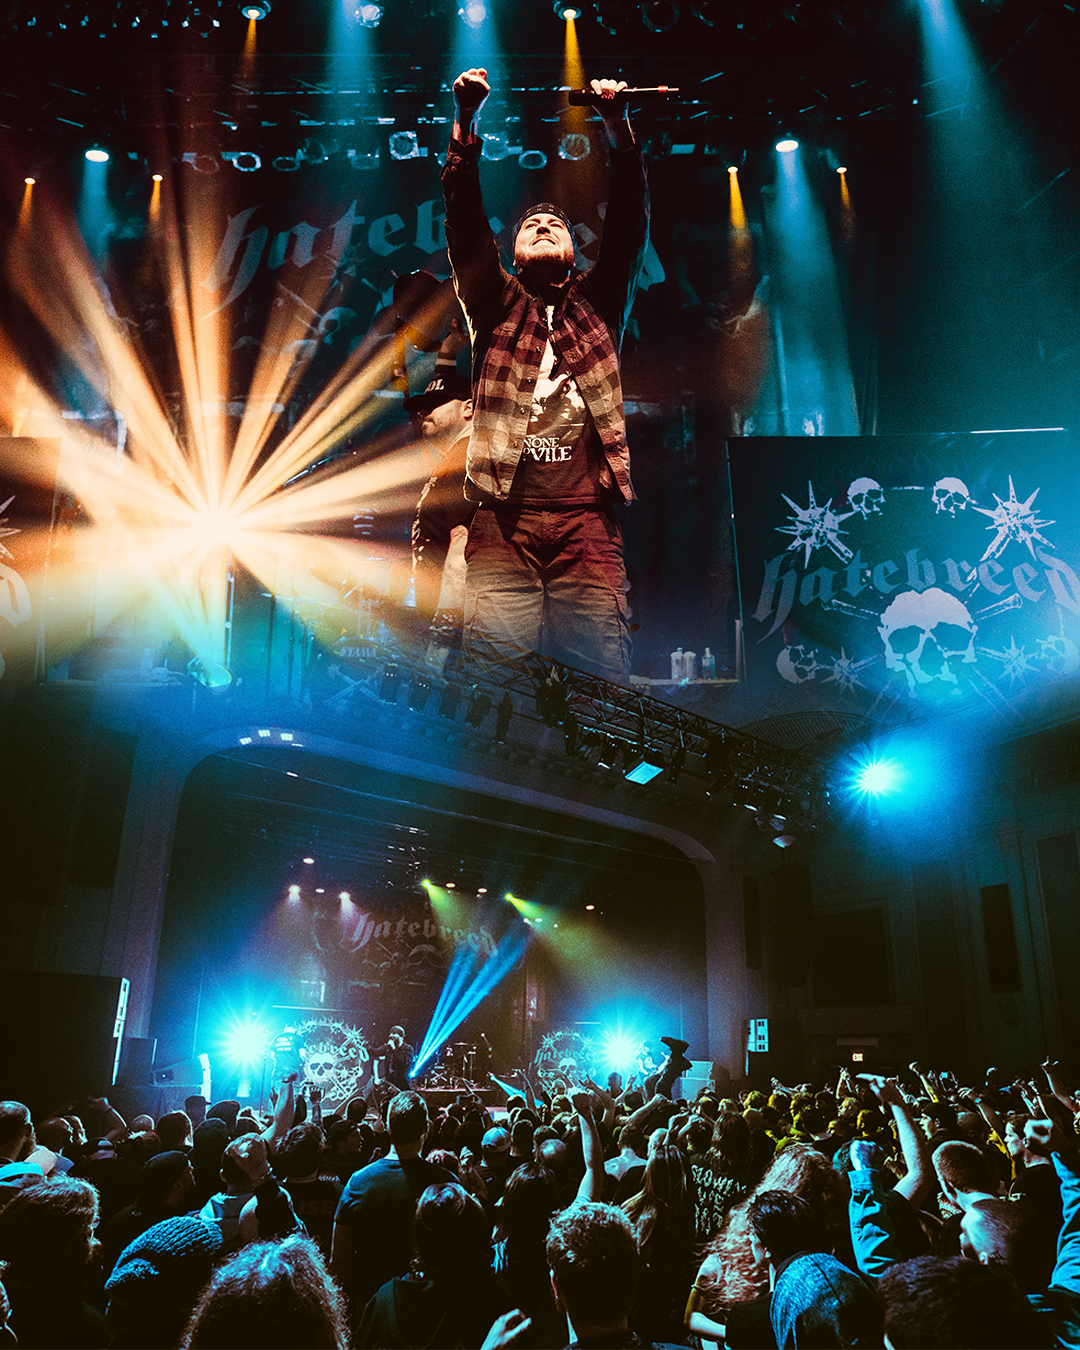 Hatebreed brings Tour to Danforth Music Hall in Toronto